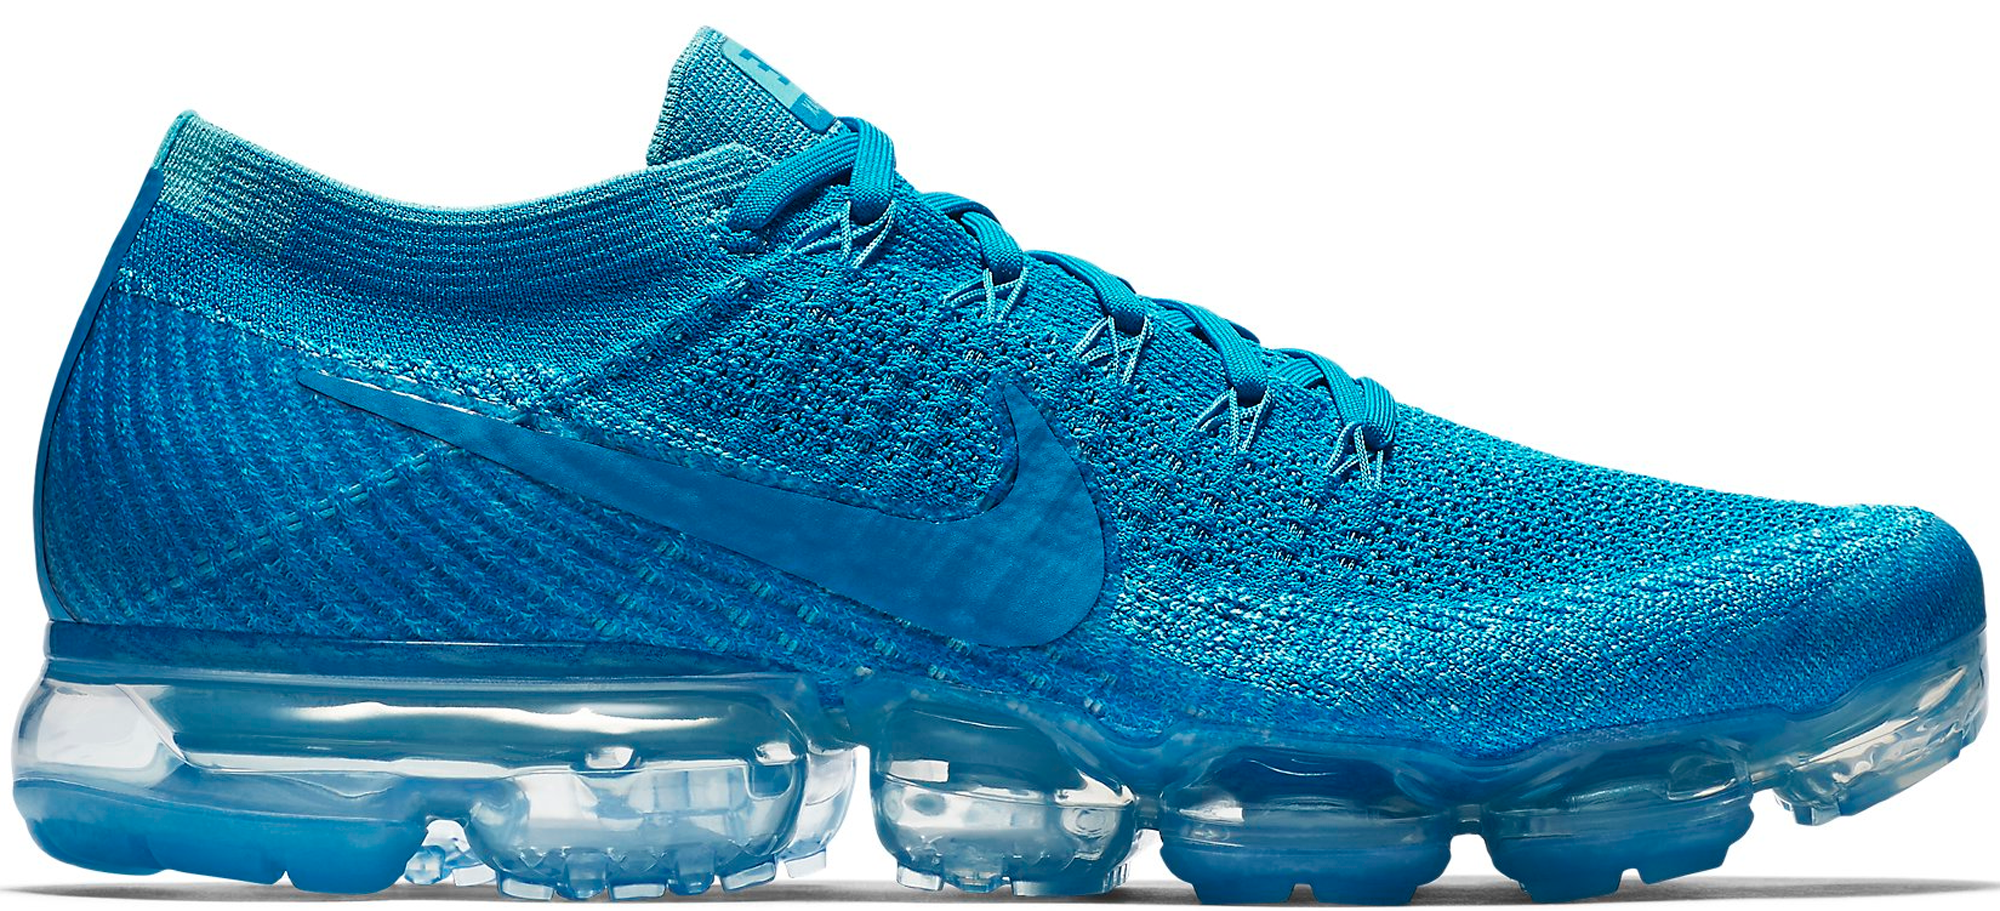 8f59262f87d Nike Air VaporMax Blue Orbit - StockX News